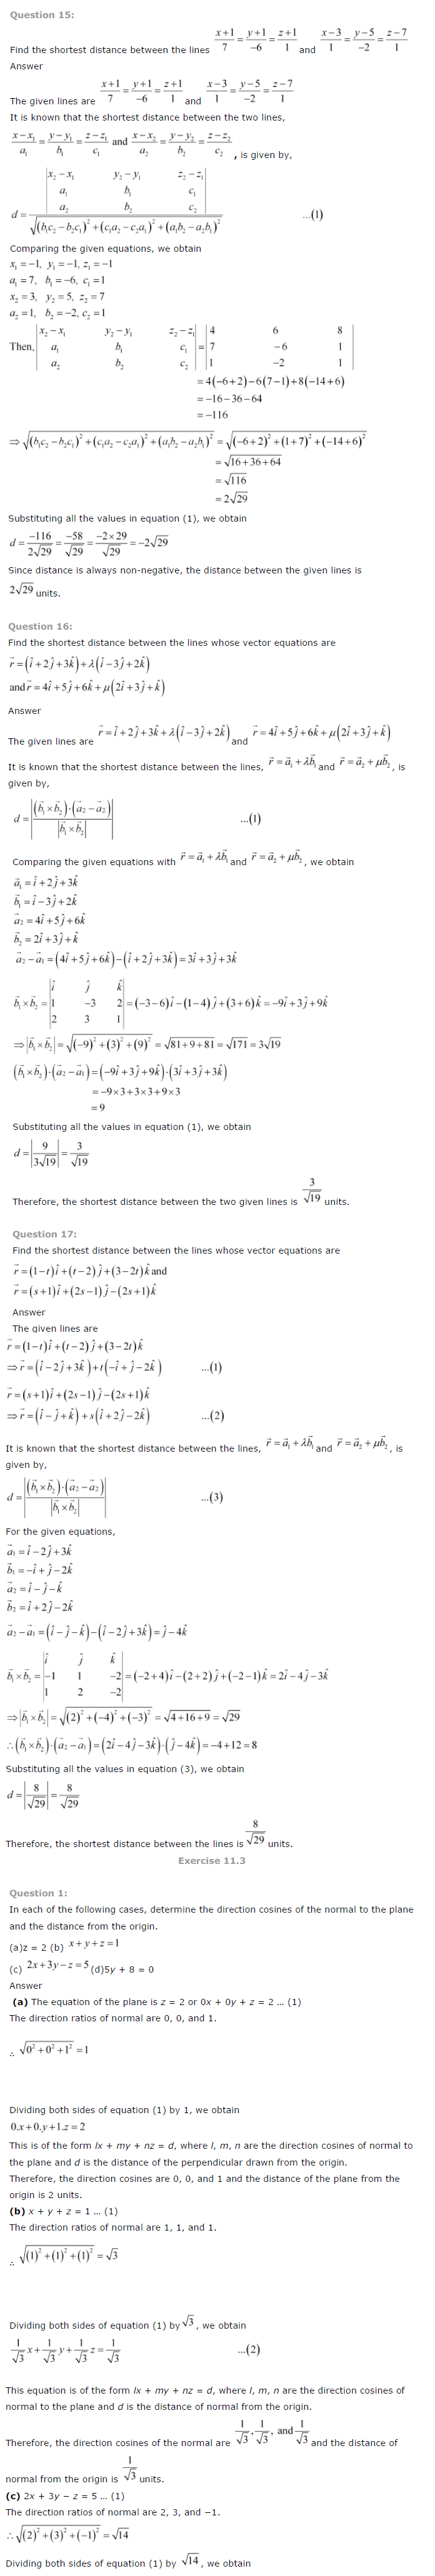 NCERT Solutions for Class 12 Maths Chapter 11 Three Dimensional Geometry ex 11.4